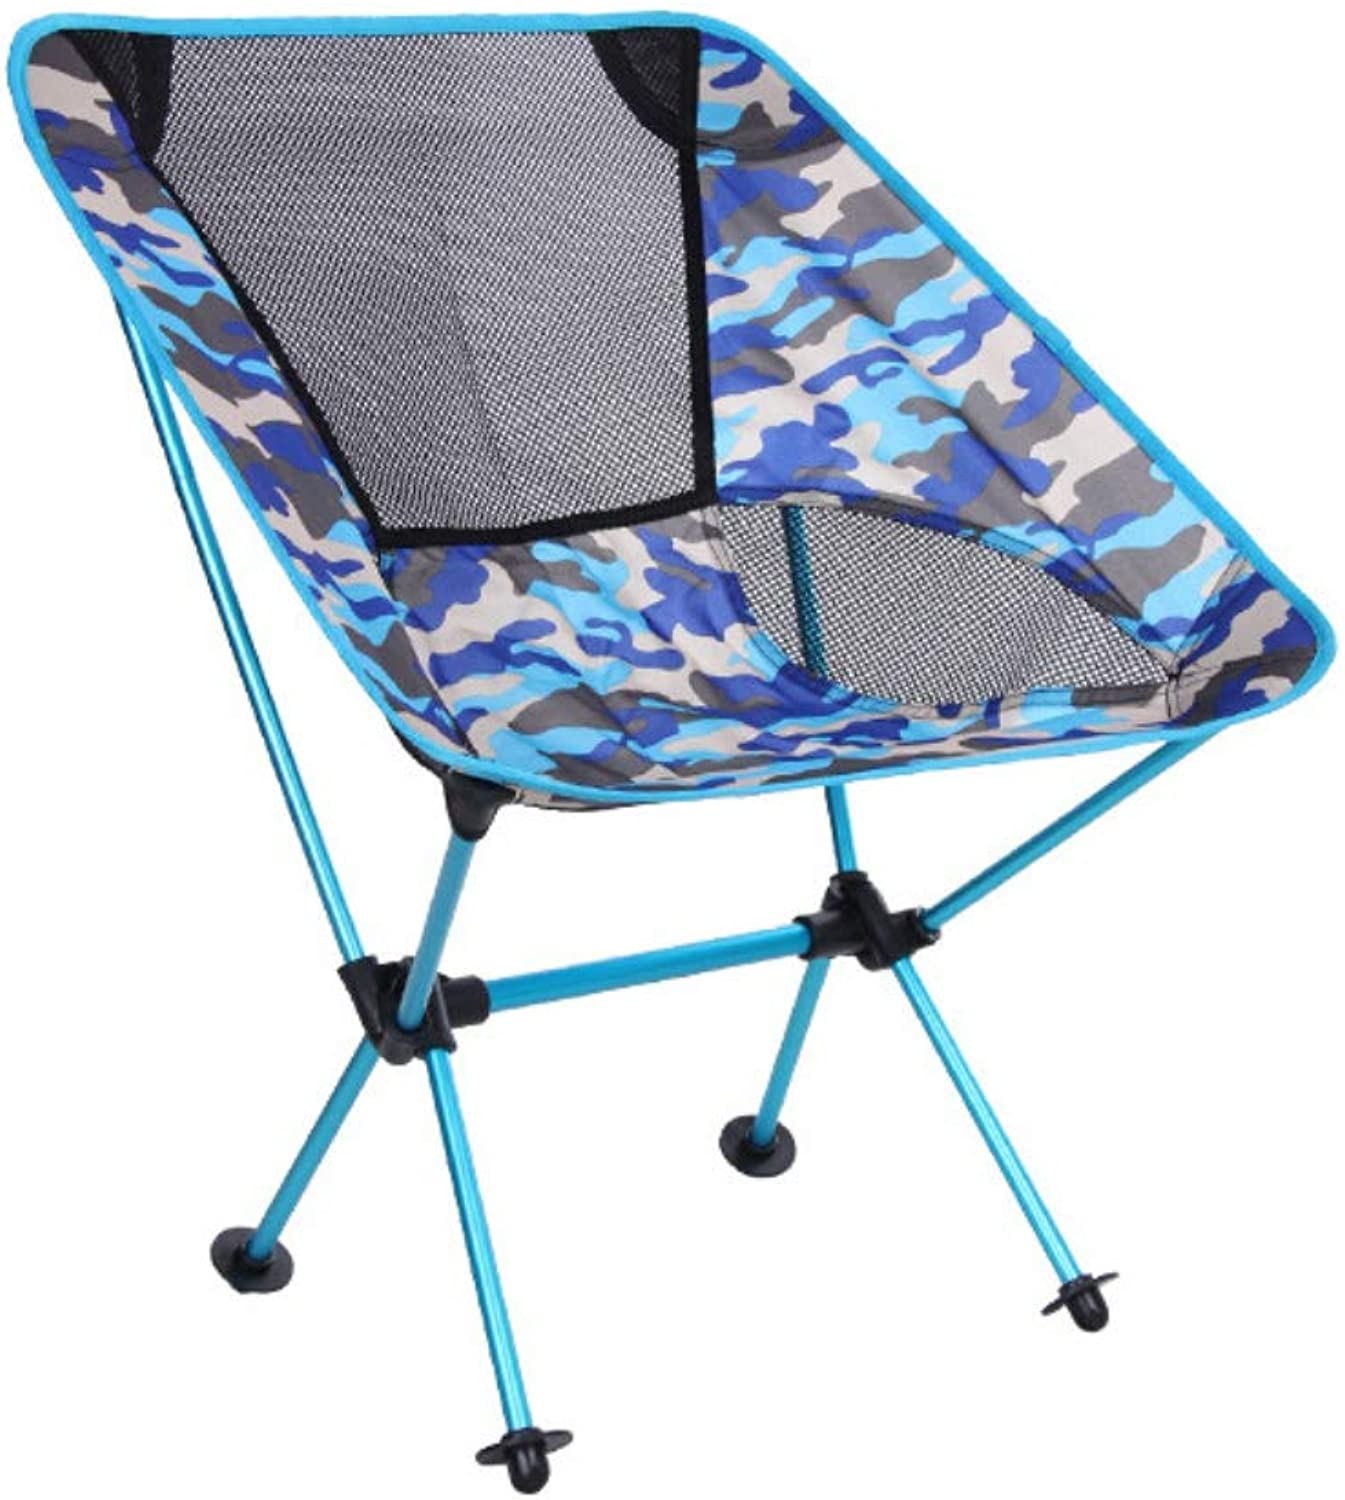 Folding Camping Chair Oxford Cloth Breathable Lightweight Portable for Backpack Hiking Picnic